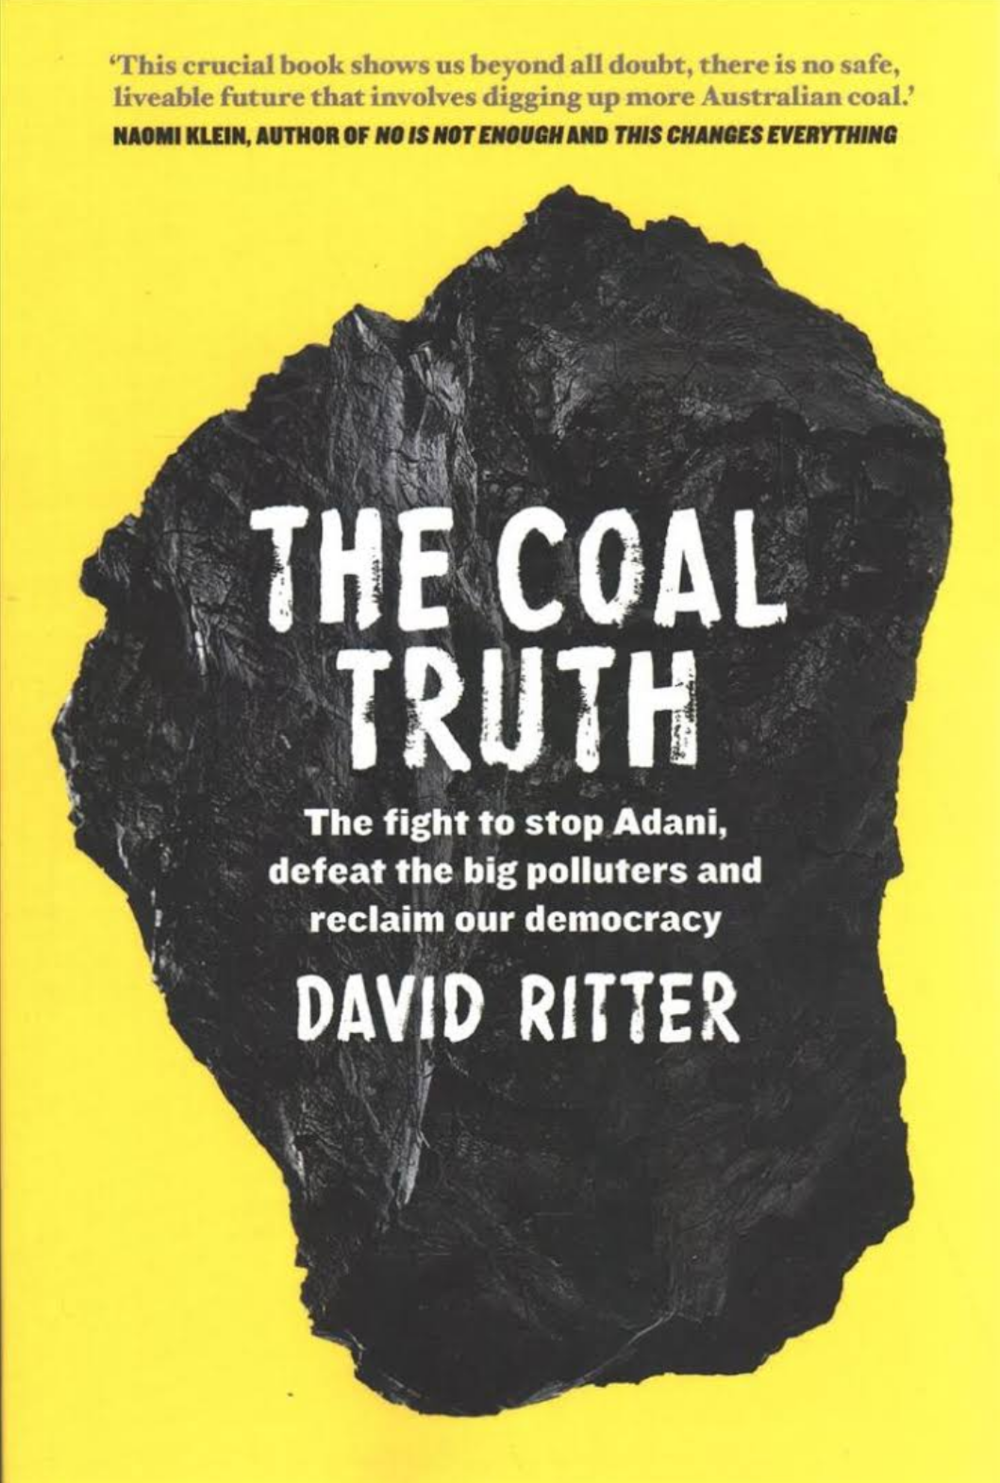 The Coal Truth - Tara and I recently penned the foreword to 'The Coal Truth'. Recently launched by the Sydney Environment Institute, this new book by David Ritter, the Australian/Pacific head of Greenpeace, offers a sobering account of the coal industry in Australia, and the ongoing attempt by Adani Mining to exploit the Galilee Basin — a plan which goes against the wishes of that land's indigenous owners, the scientific community, and majority of Australians. You can get a copy of David's extraordinary book here.Below is a podcast of the launch event, which was held at Sydney University, with Professor David Schlosberg, Co-director, Sydney Environment Institute, chairing the a panel with Professor Lesley Hughes, from Macquarie University, my wife Tara Moss, David and myself.